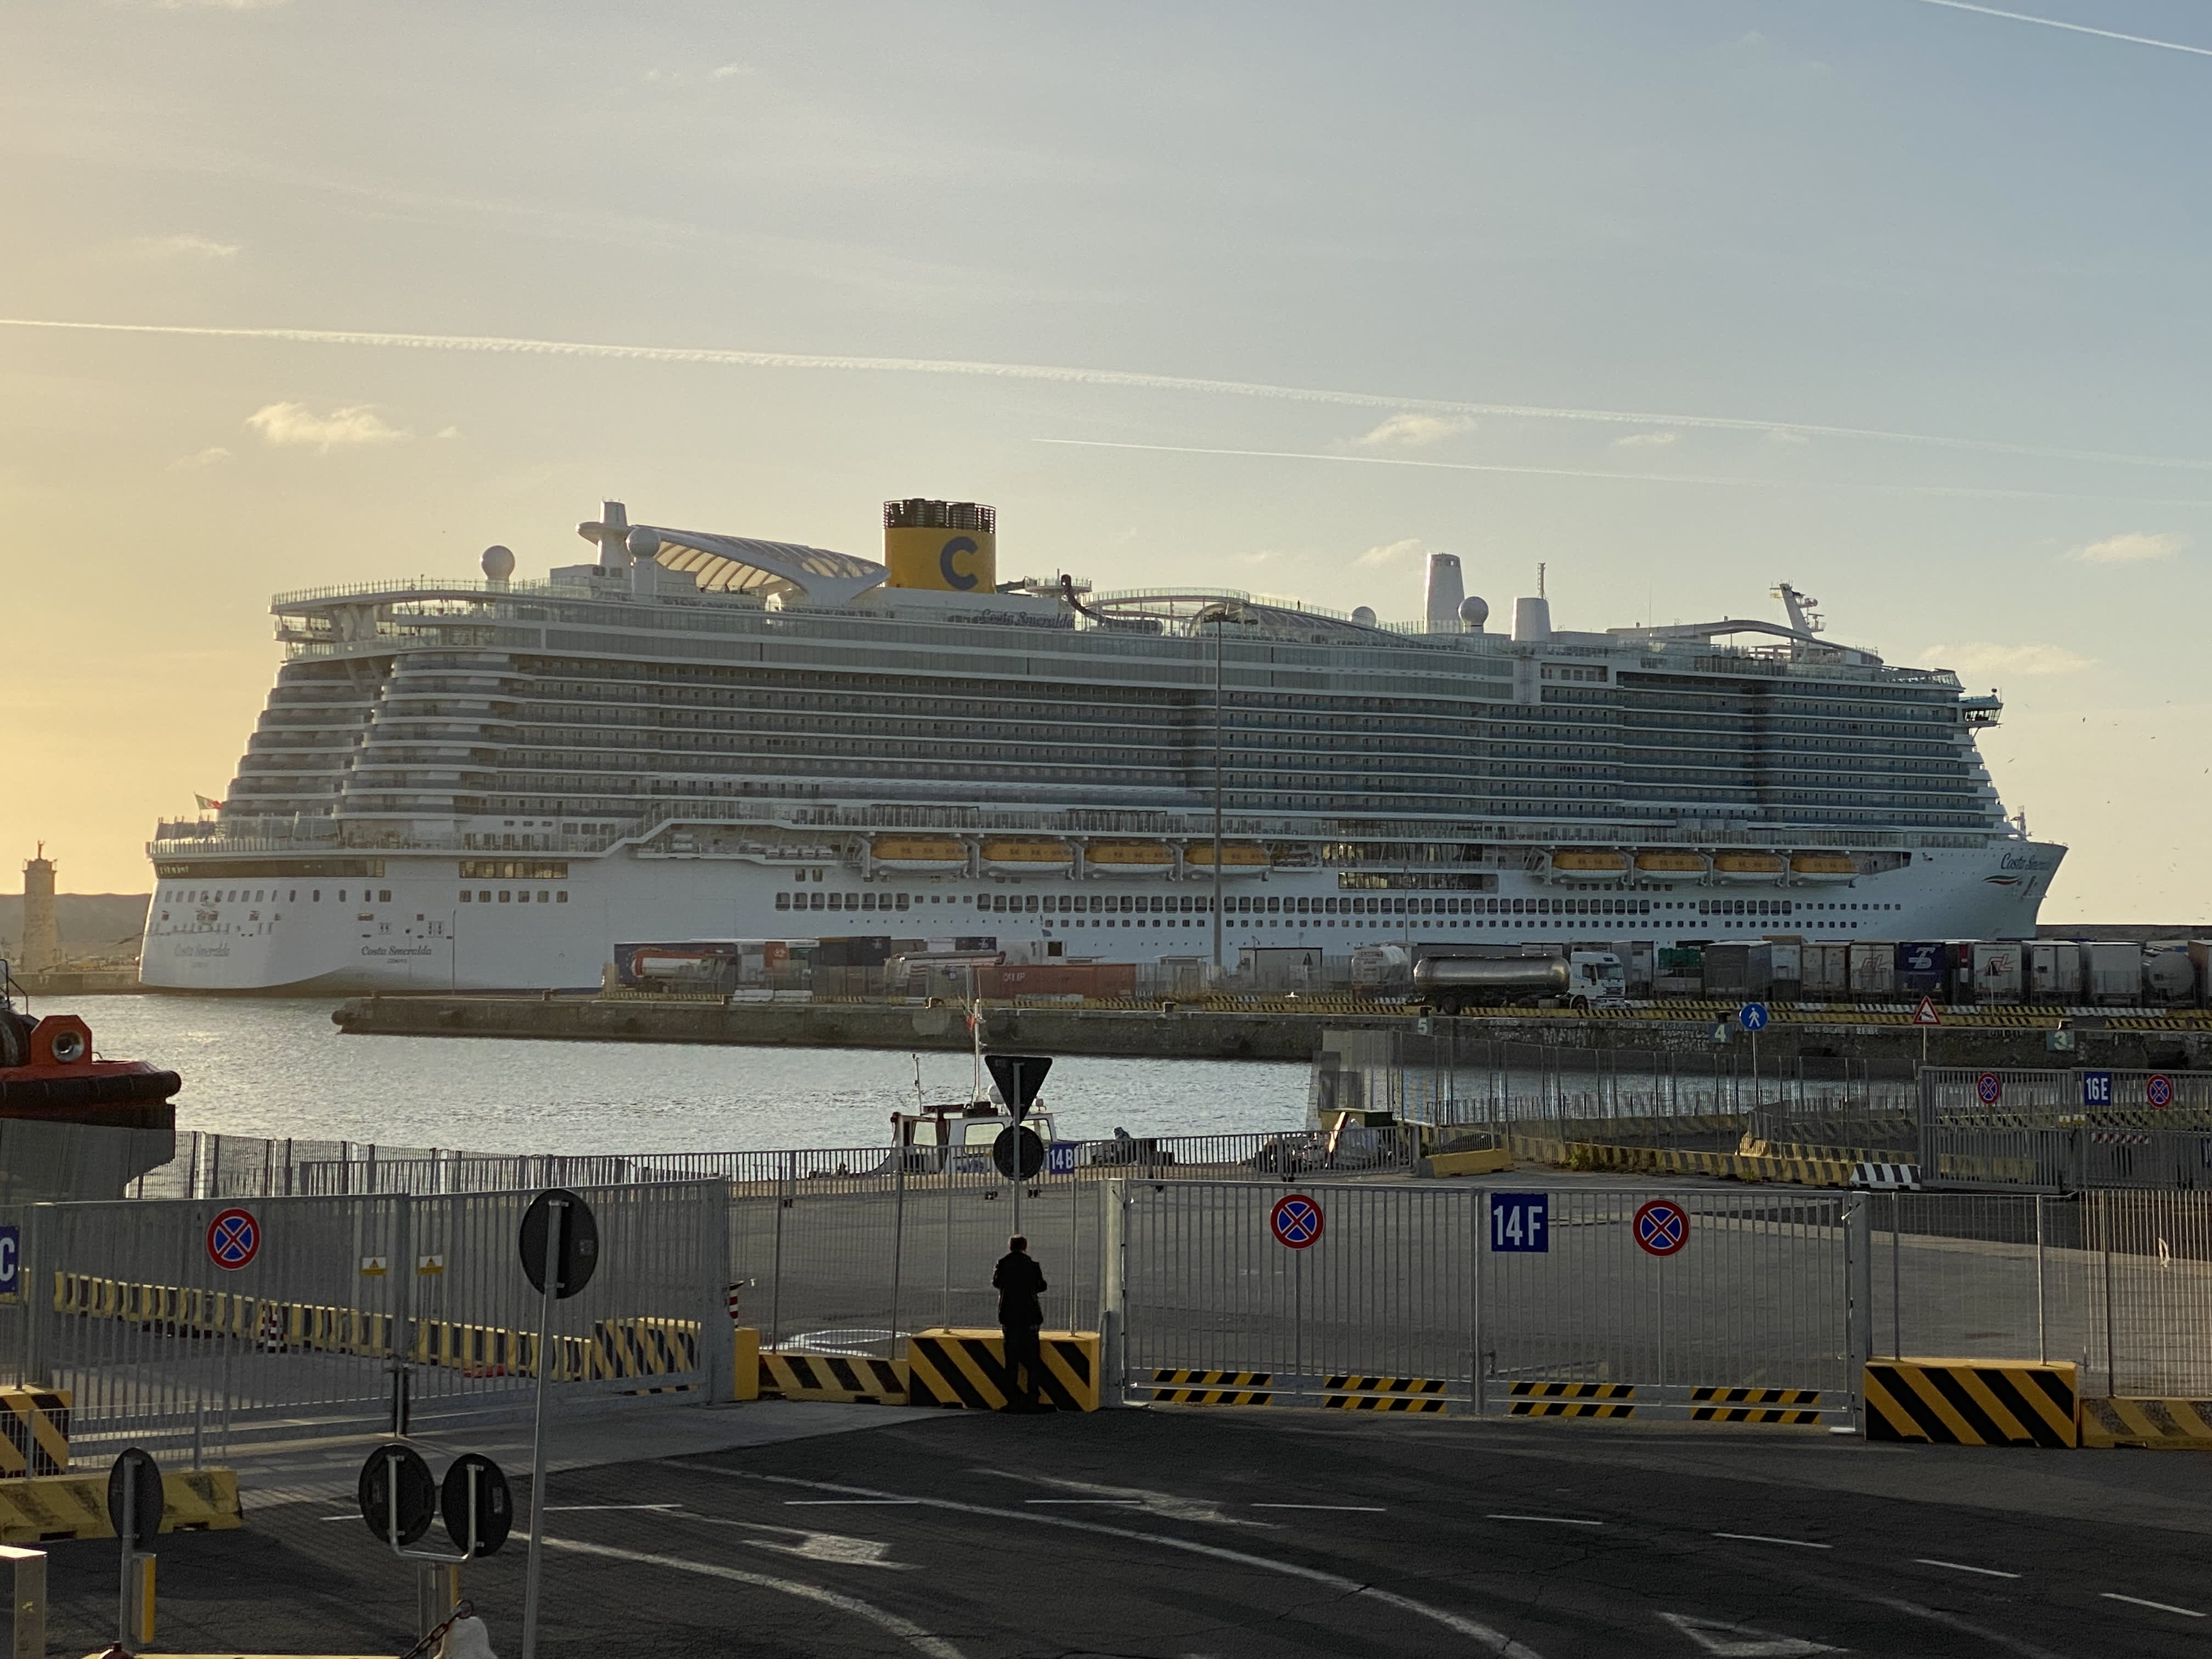 Travel safety tips for coronavirus: cruises, theme parks, airports